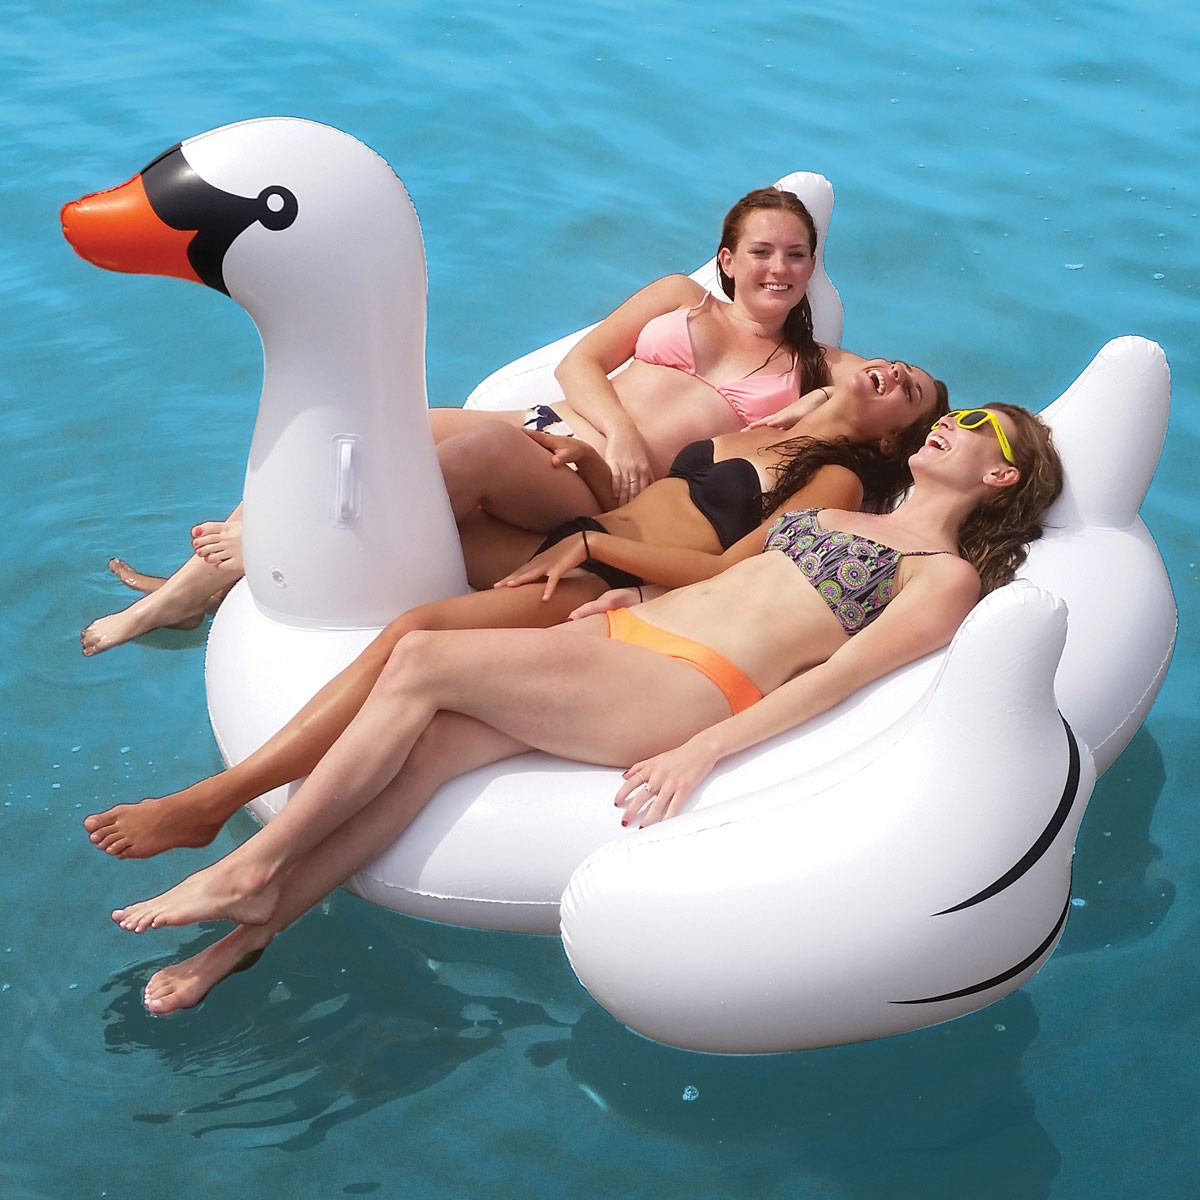 Swimline Giant Swan 75-in Inflatable Ride-On Pool Toy by Swimline